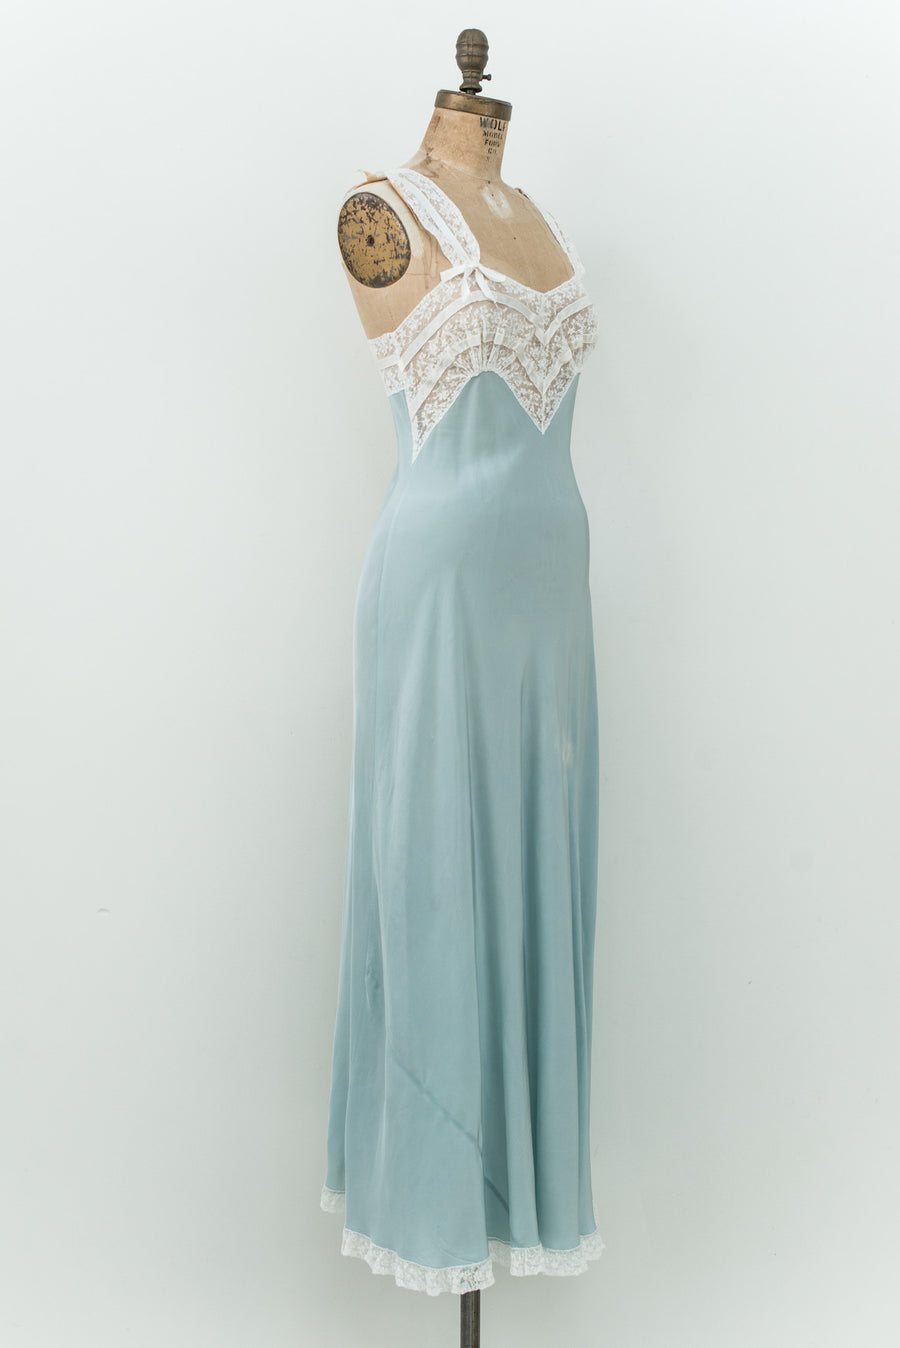 1930s Blue Satin and Lace Slip - XS